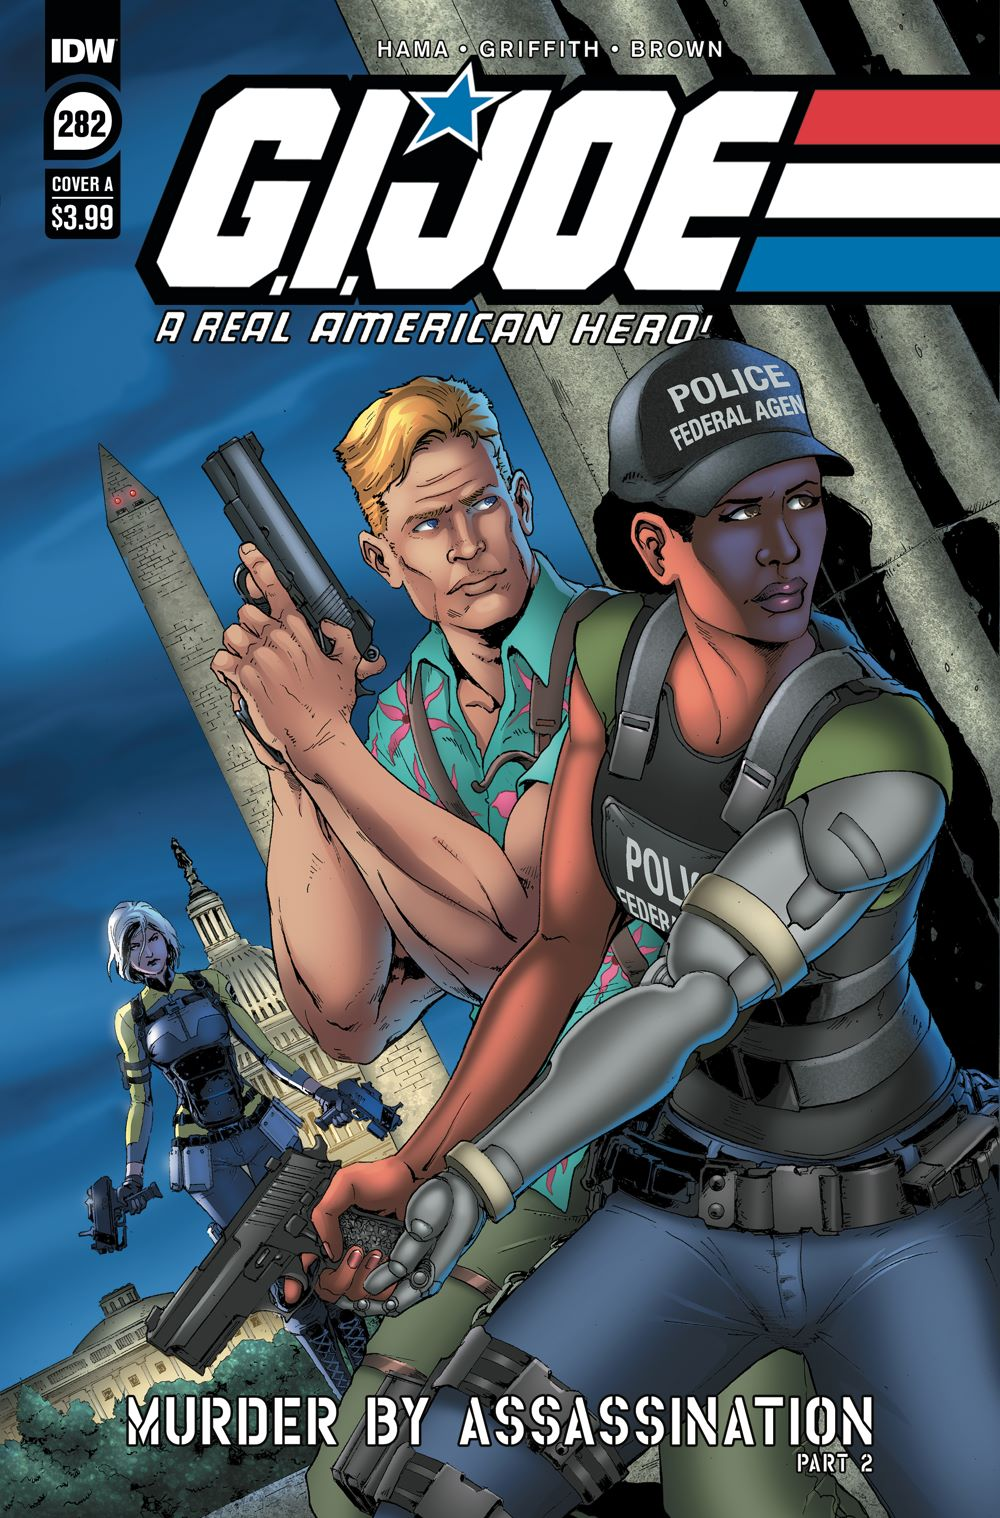 GIJoeRAH282-coverA ComicList: IDW Publishing New Releases for 06/09/2021